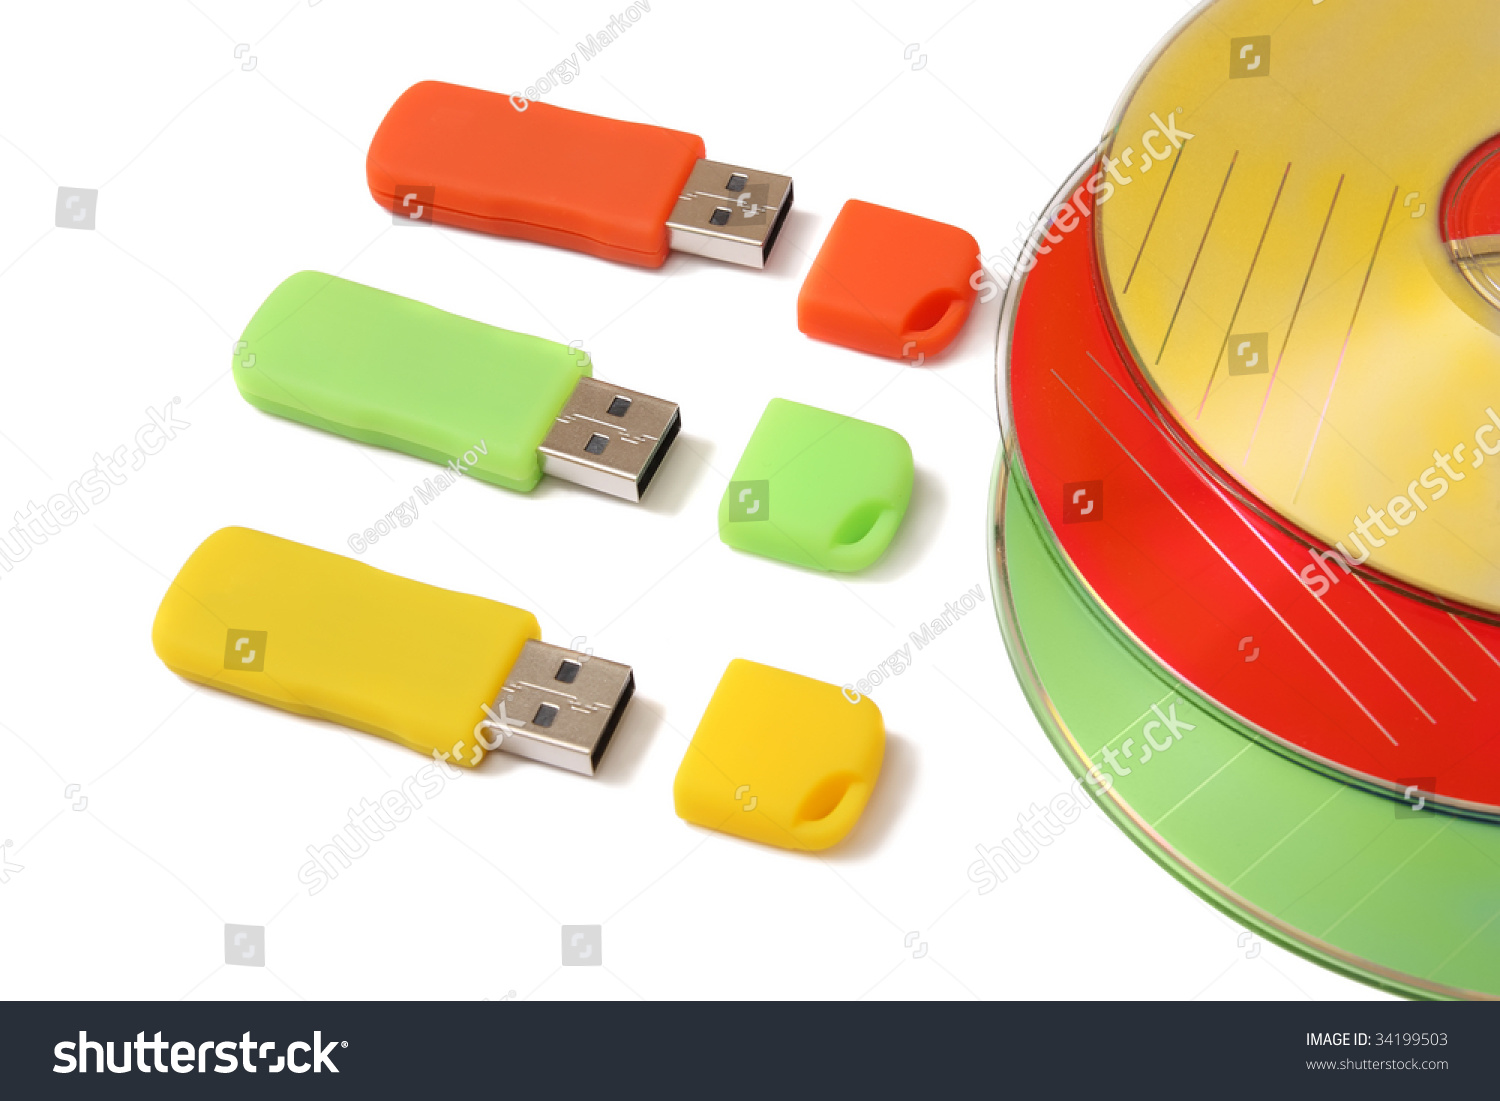 Digital Data Storage Devices Flash Drives Stock Photo 34199503 ...